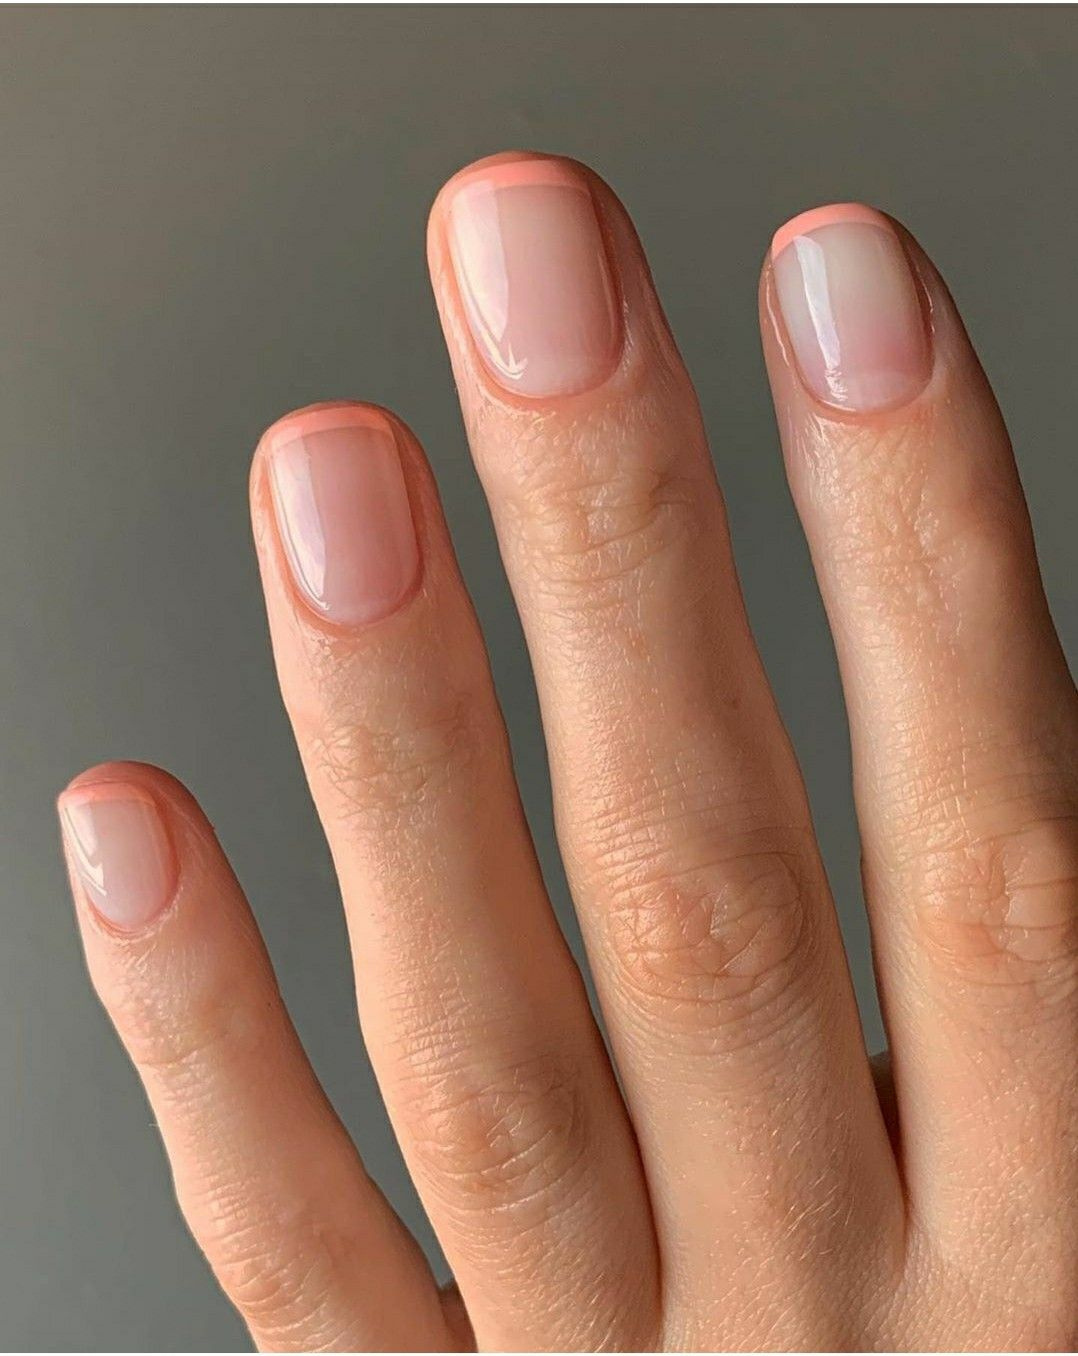 Pin By Sarah Spicer On Beauty In 2020 Colored French Nails Manicure Gel Nails